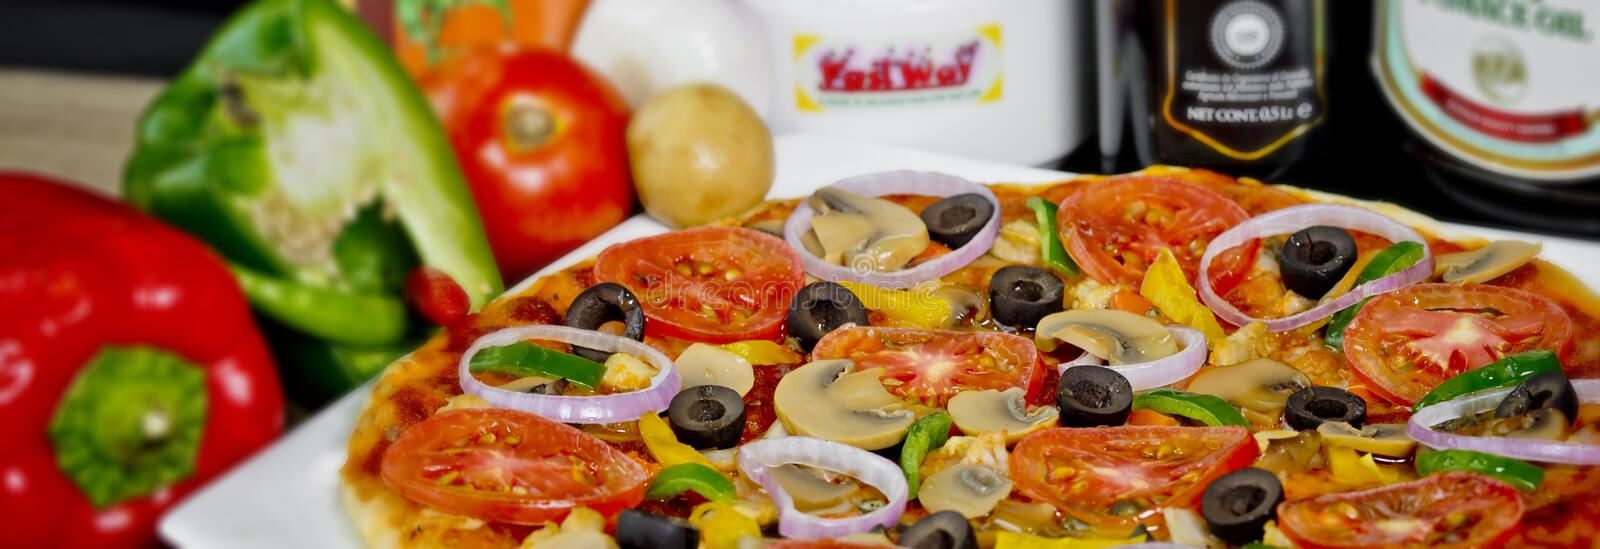 Popular colorful ingredients as like tomatoes, cheese, mushroom, capsicum, olives and other ingredients baked healthy Pizza.  stock photo